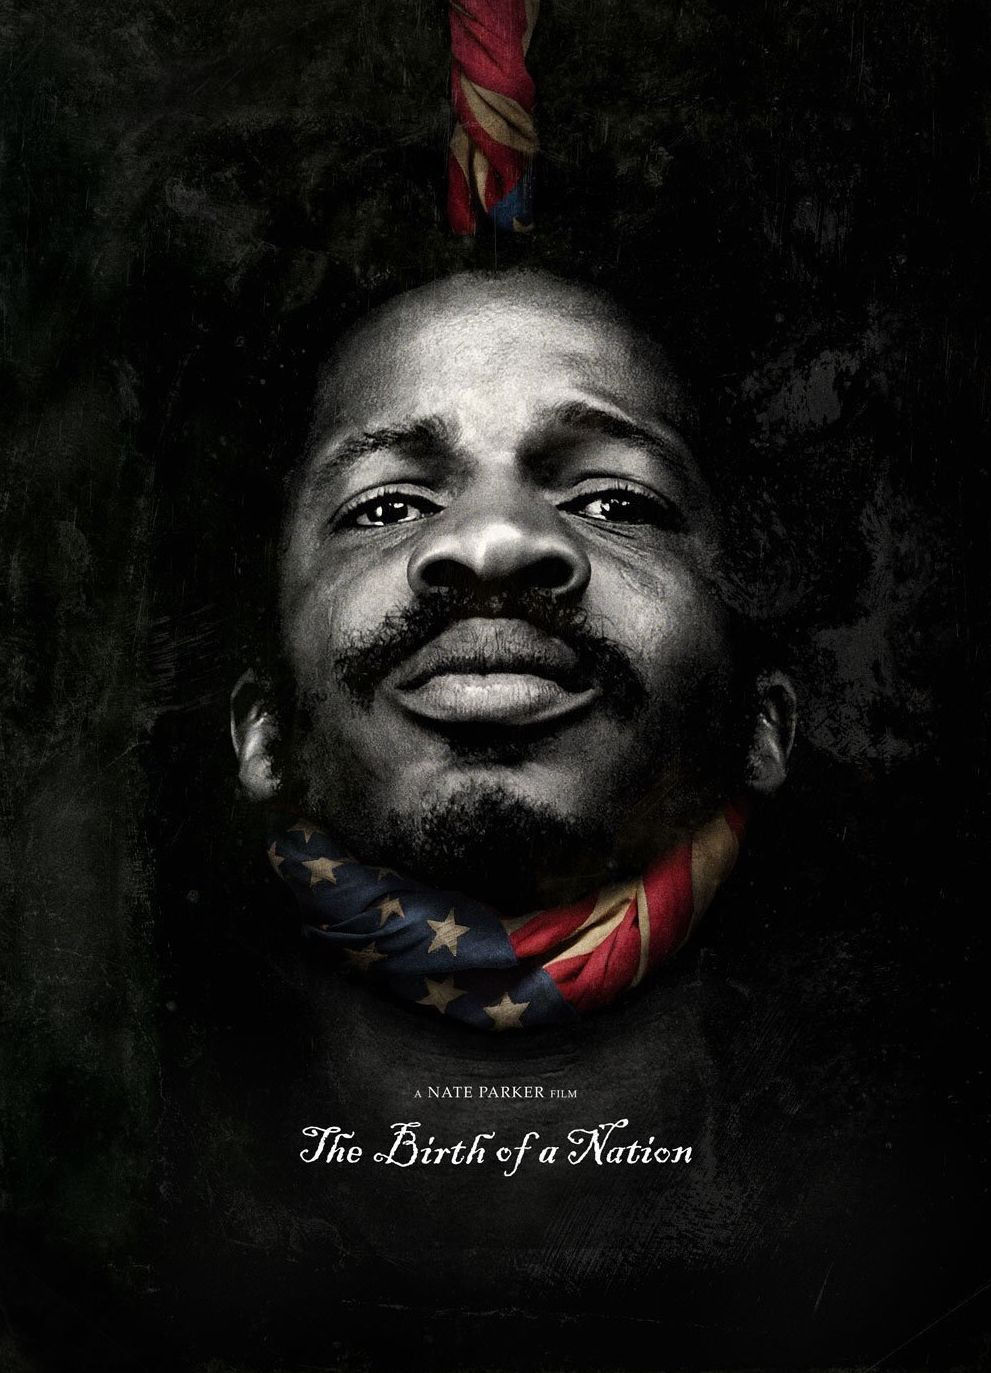 A bleak new poster for Nate Parker's 'The Birth of a Nation'